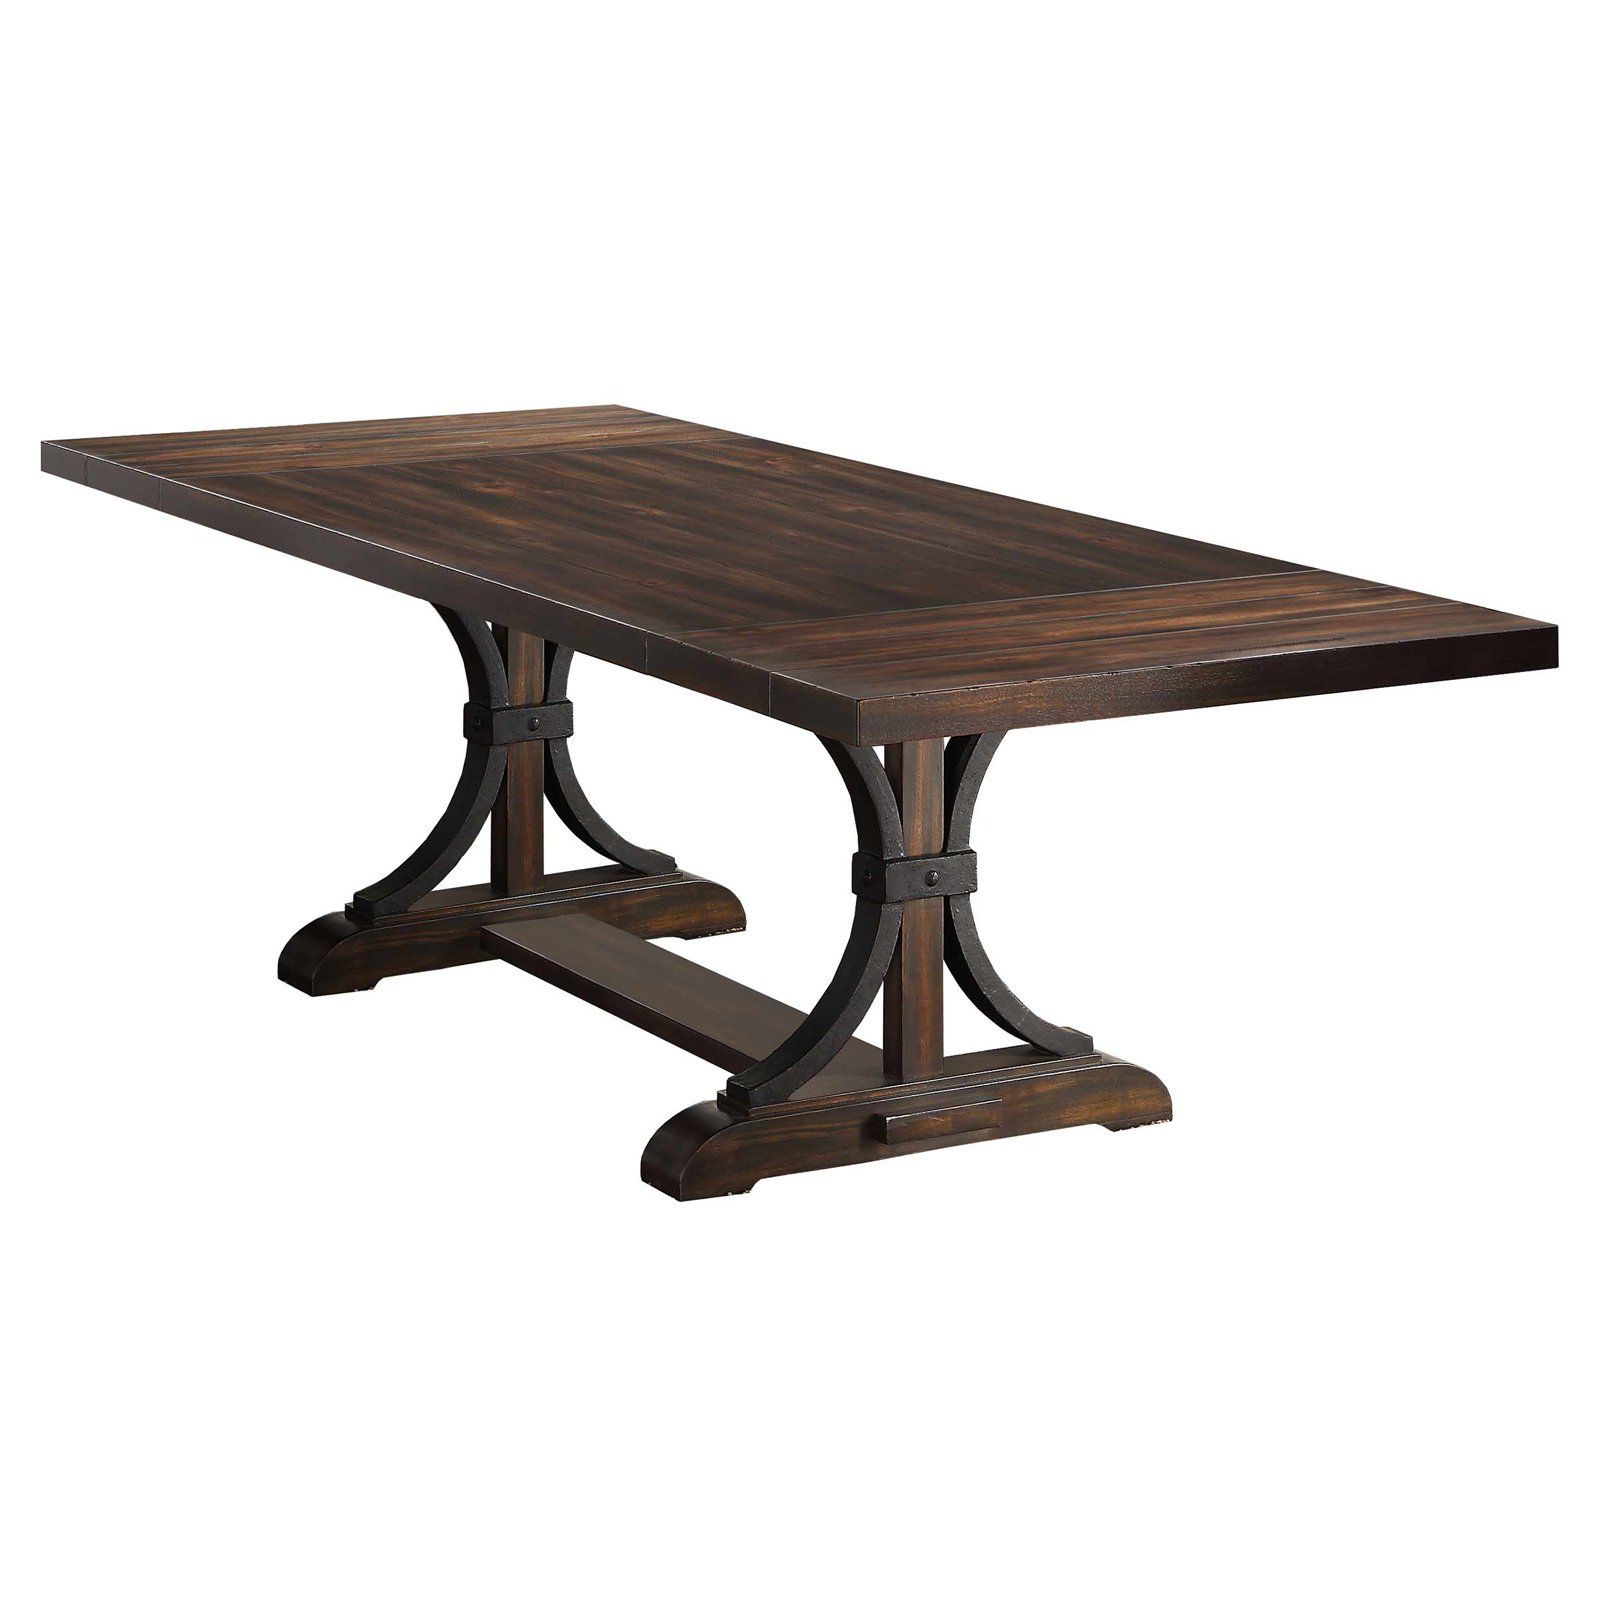 Winners Only 102 in. Pedestal Dining Table with Extension Leaves